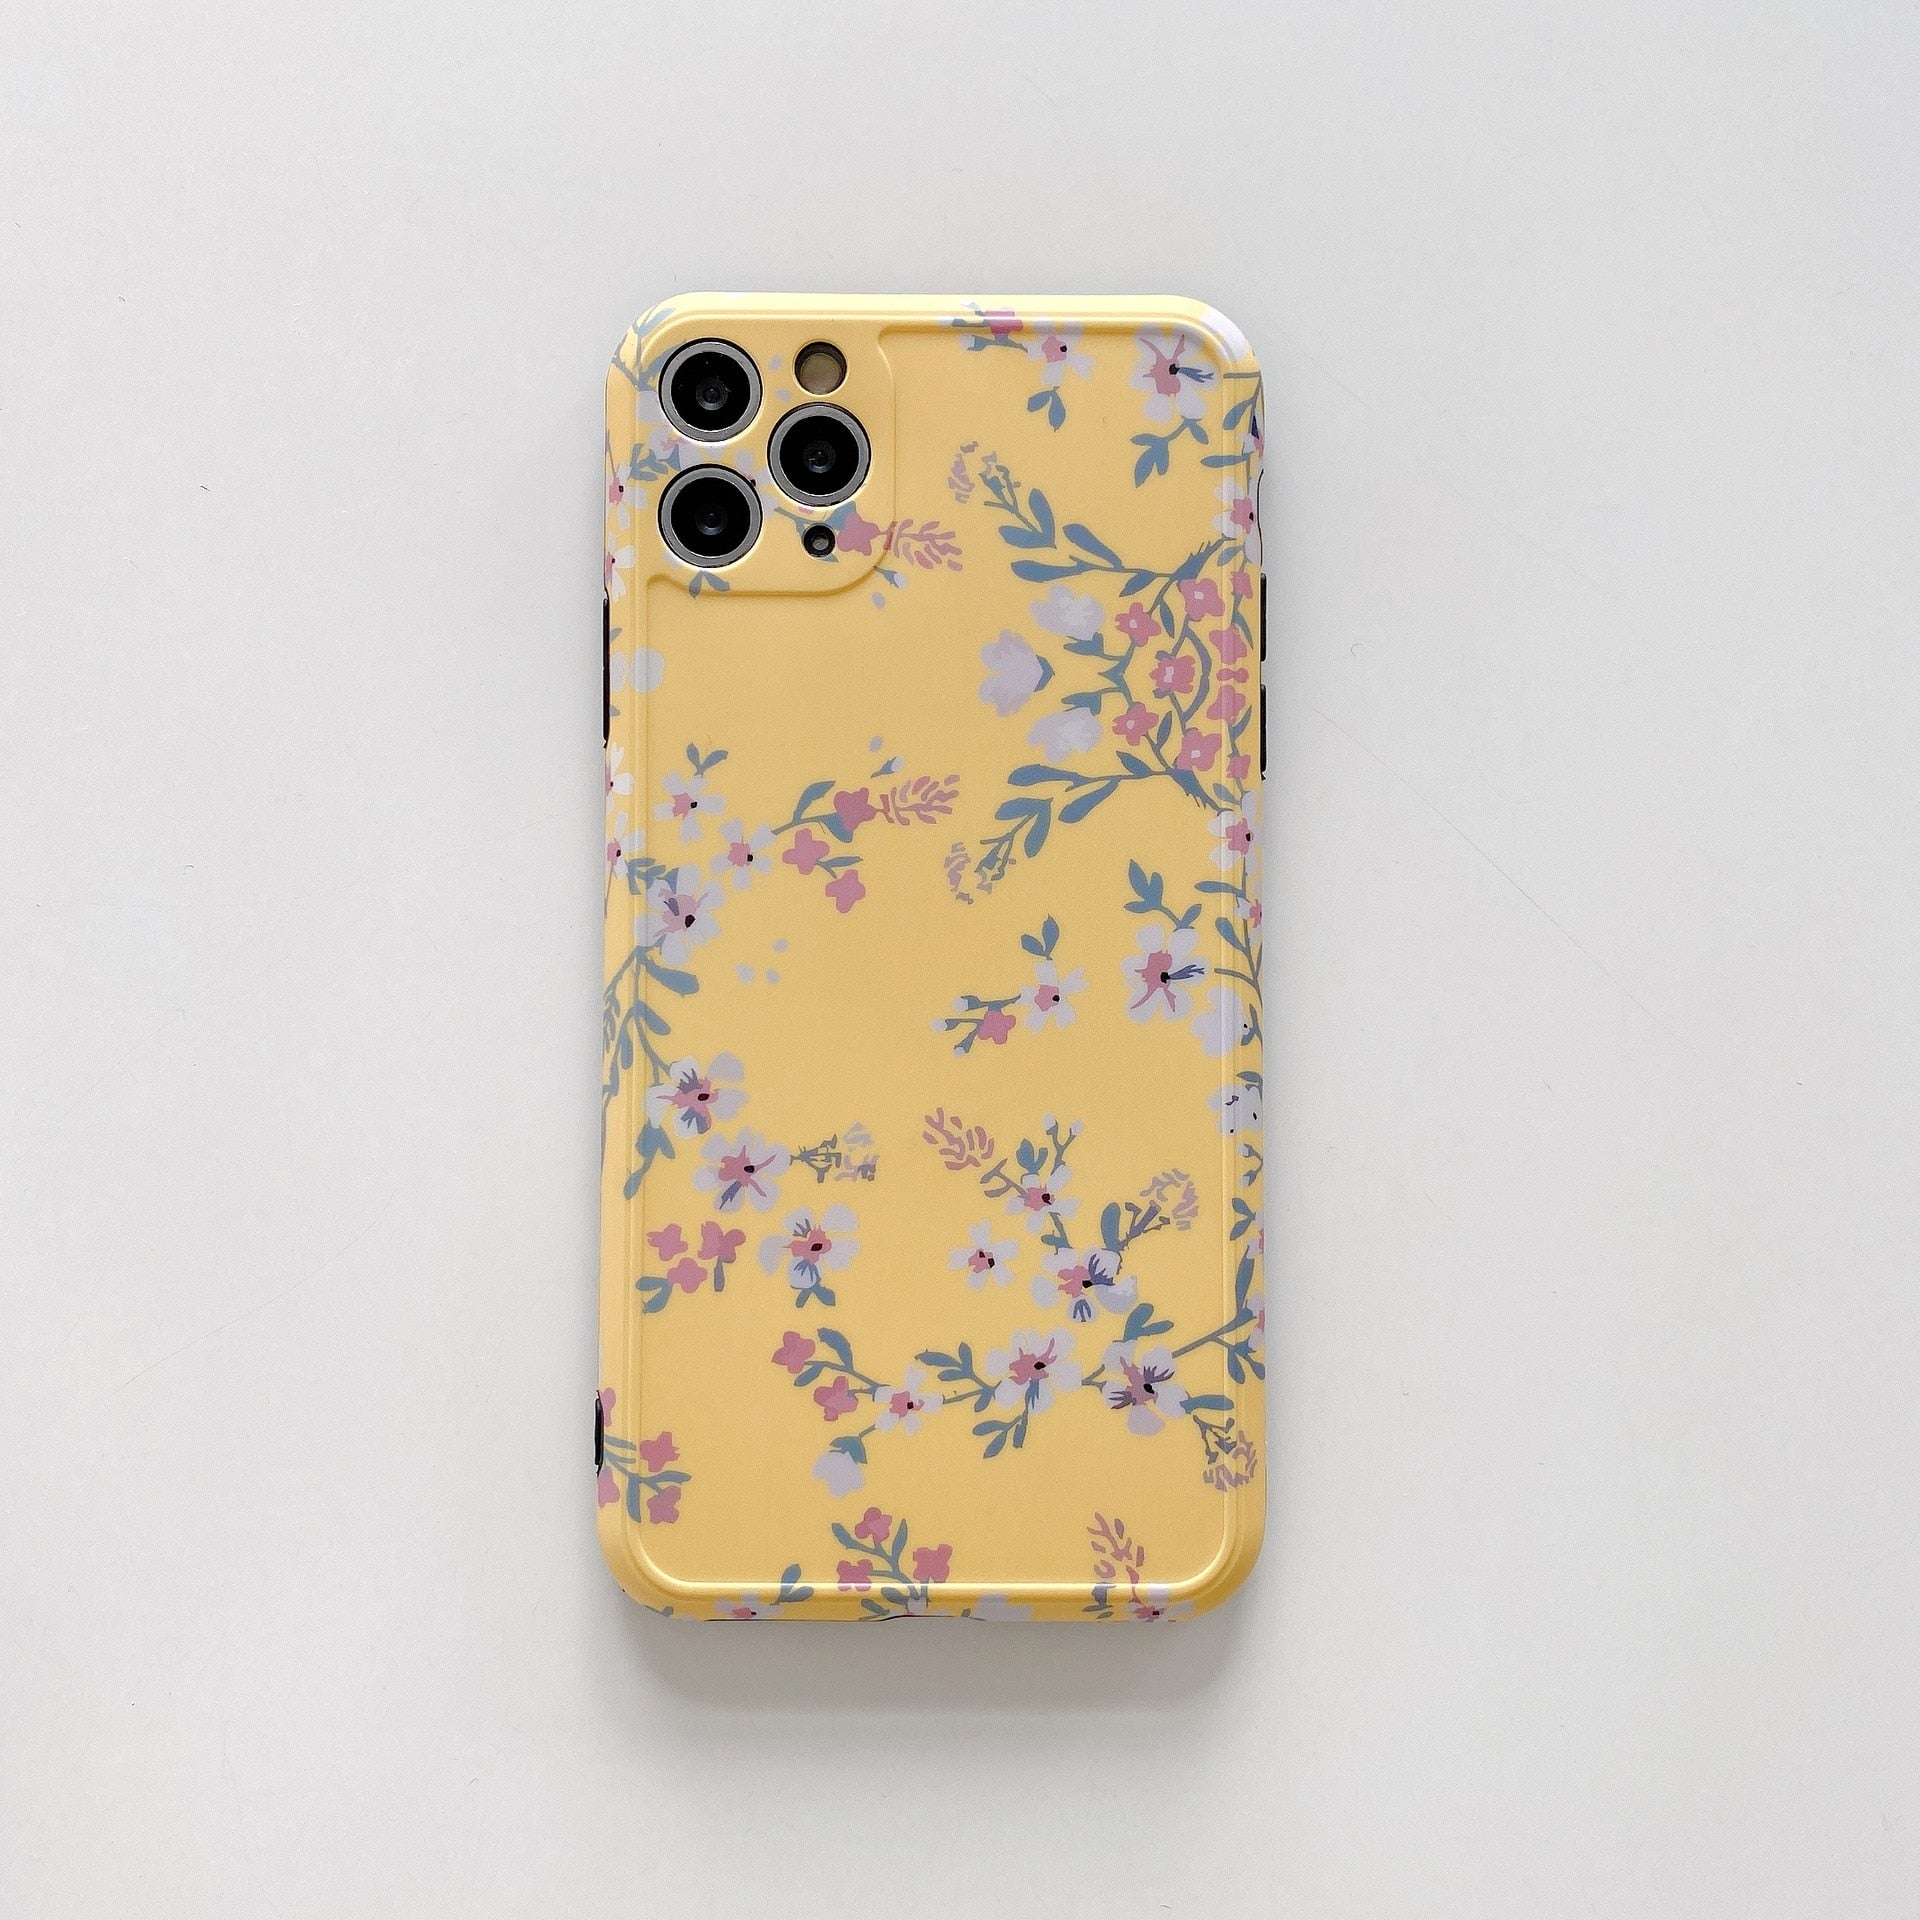 Vintage Flower For iPhone 11 Pro Max X XR XS Max Phone Case 7 8 Plus SE2020 Soft TPU Luxury Floral Back Cover Coque Funda